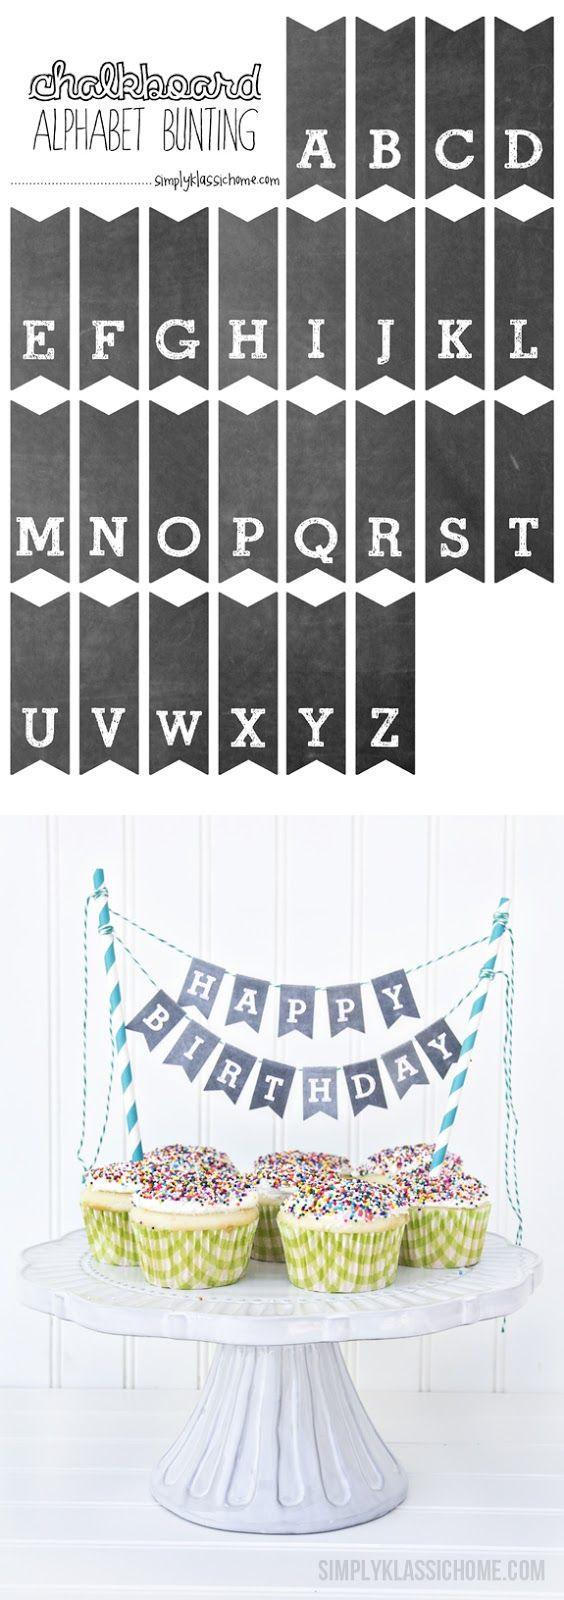 Mariage - Printable Chalkboard Letters Cake Bunting